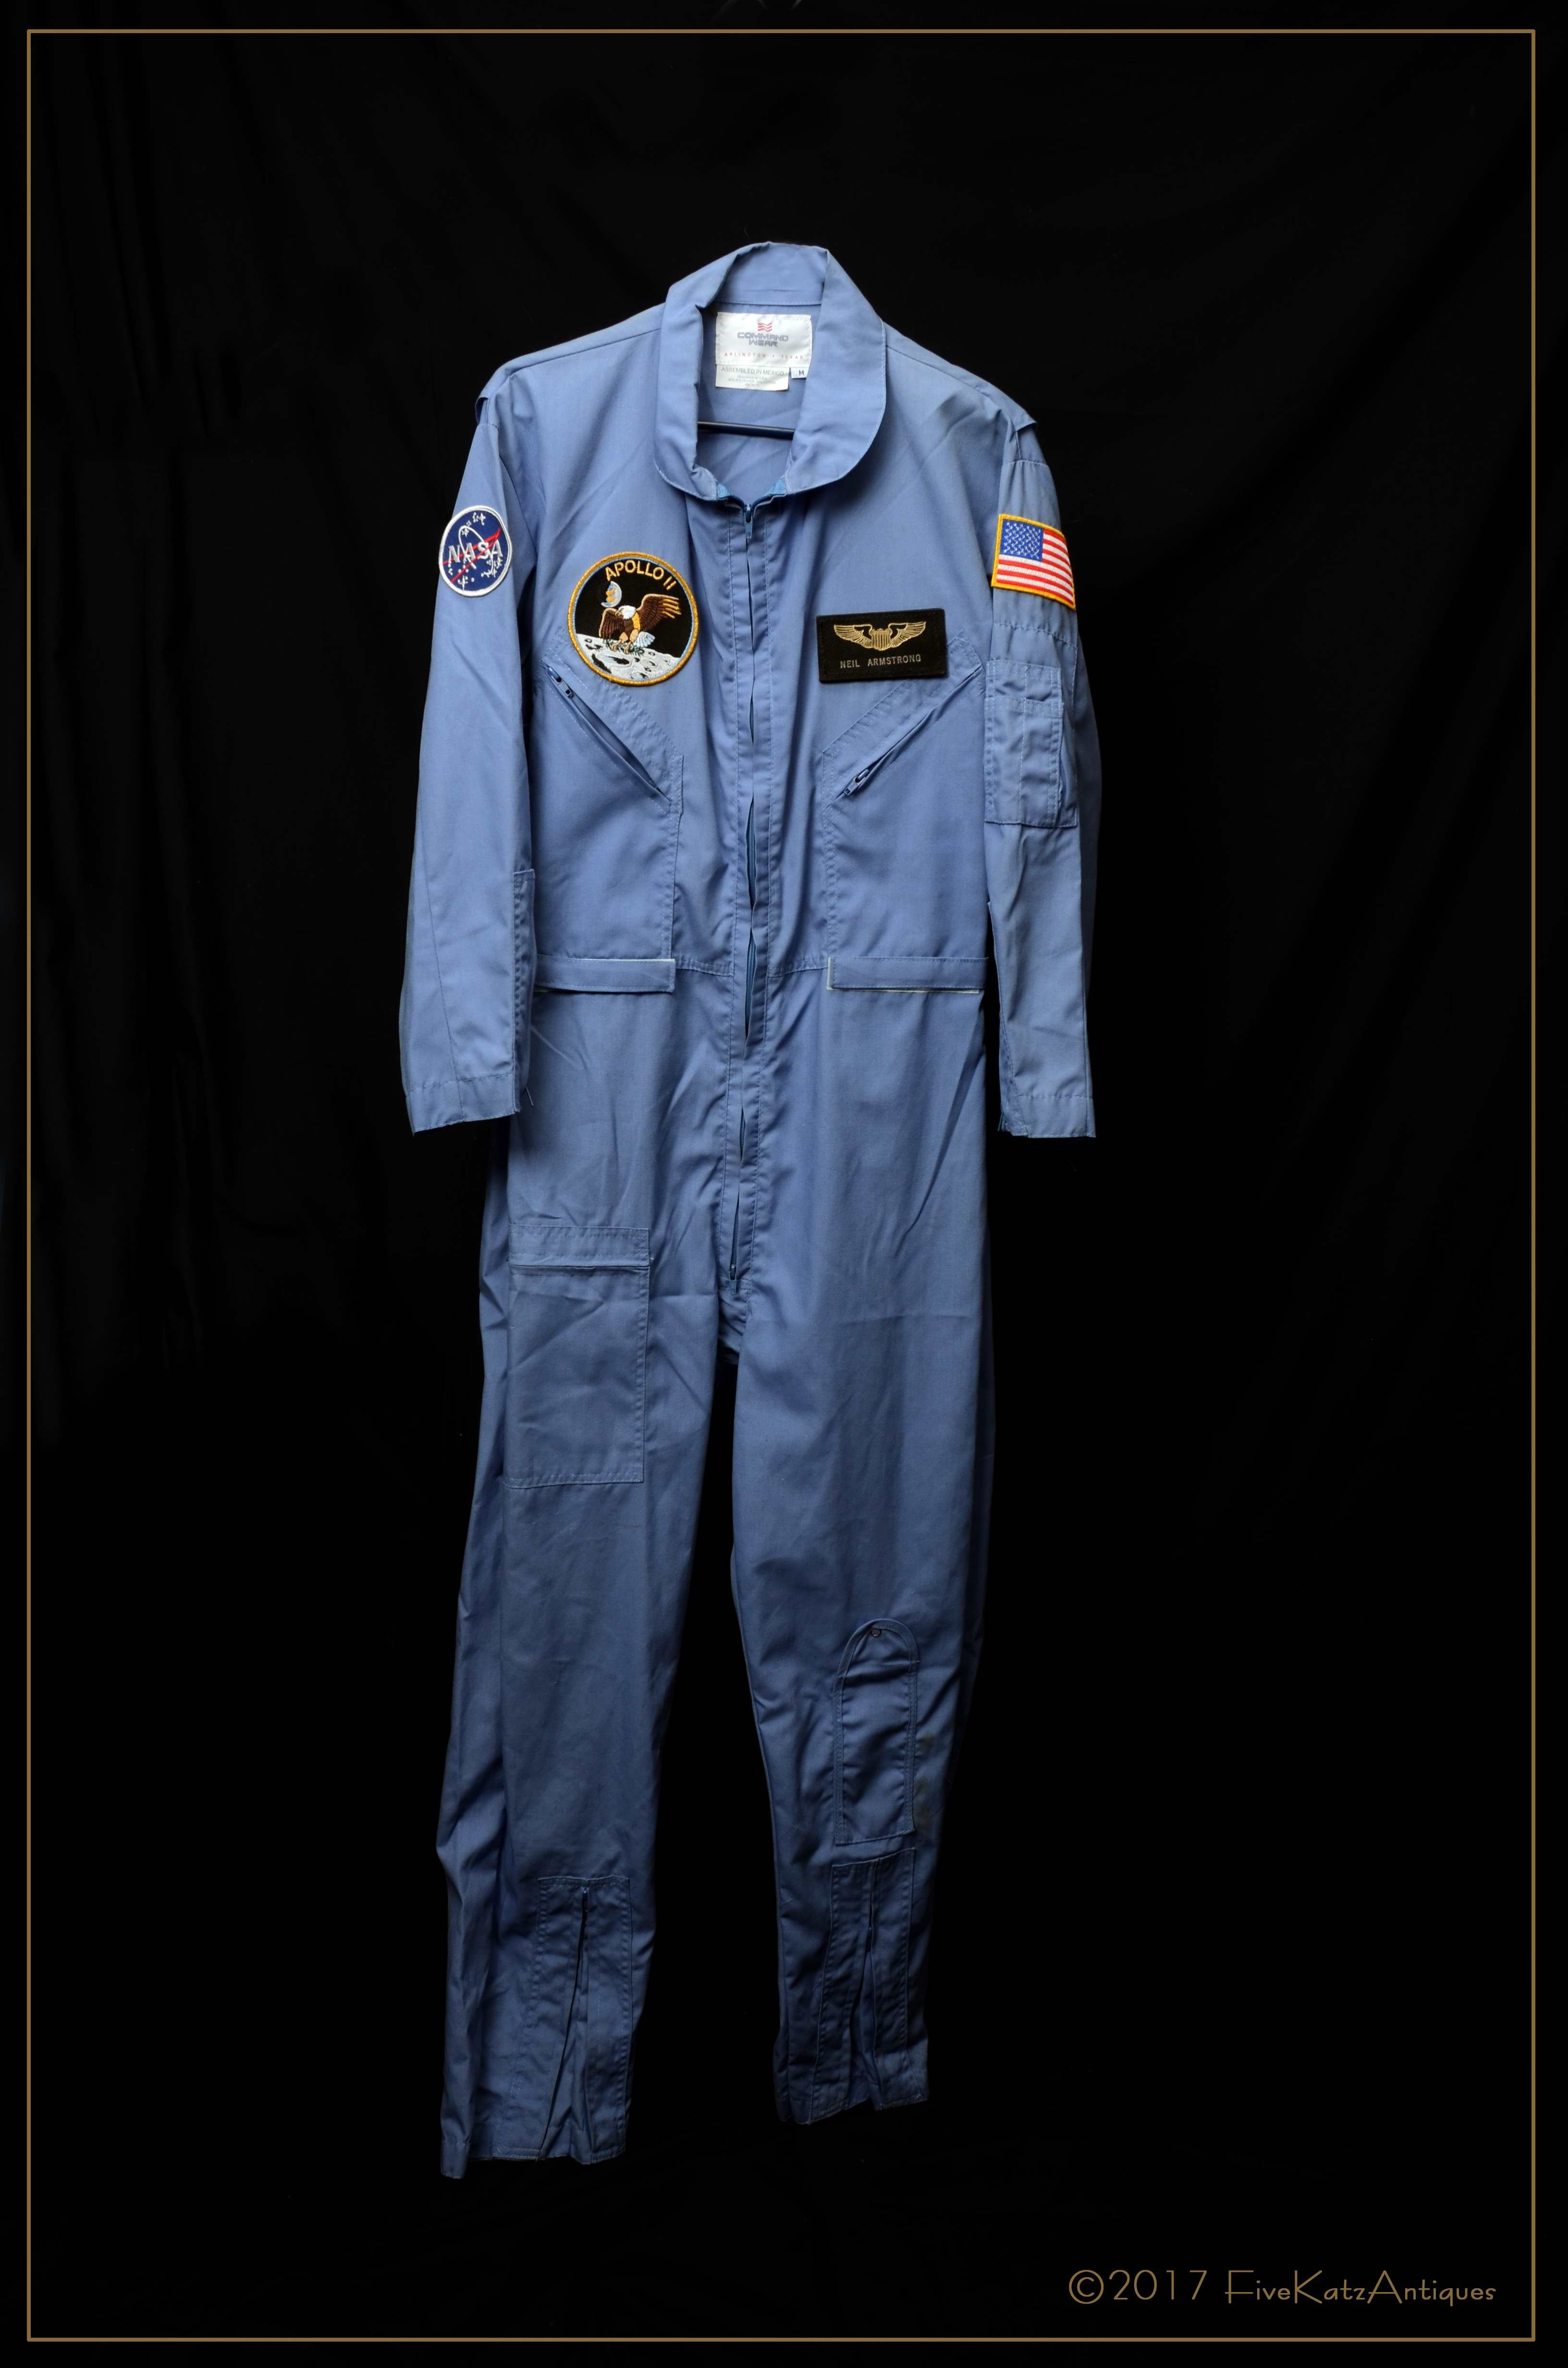 349532a3272 Vintage Reproduction NASA Neil Armstrong flight suit